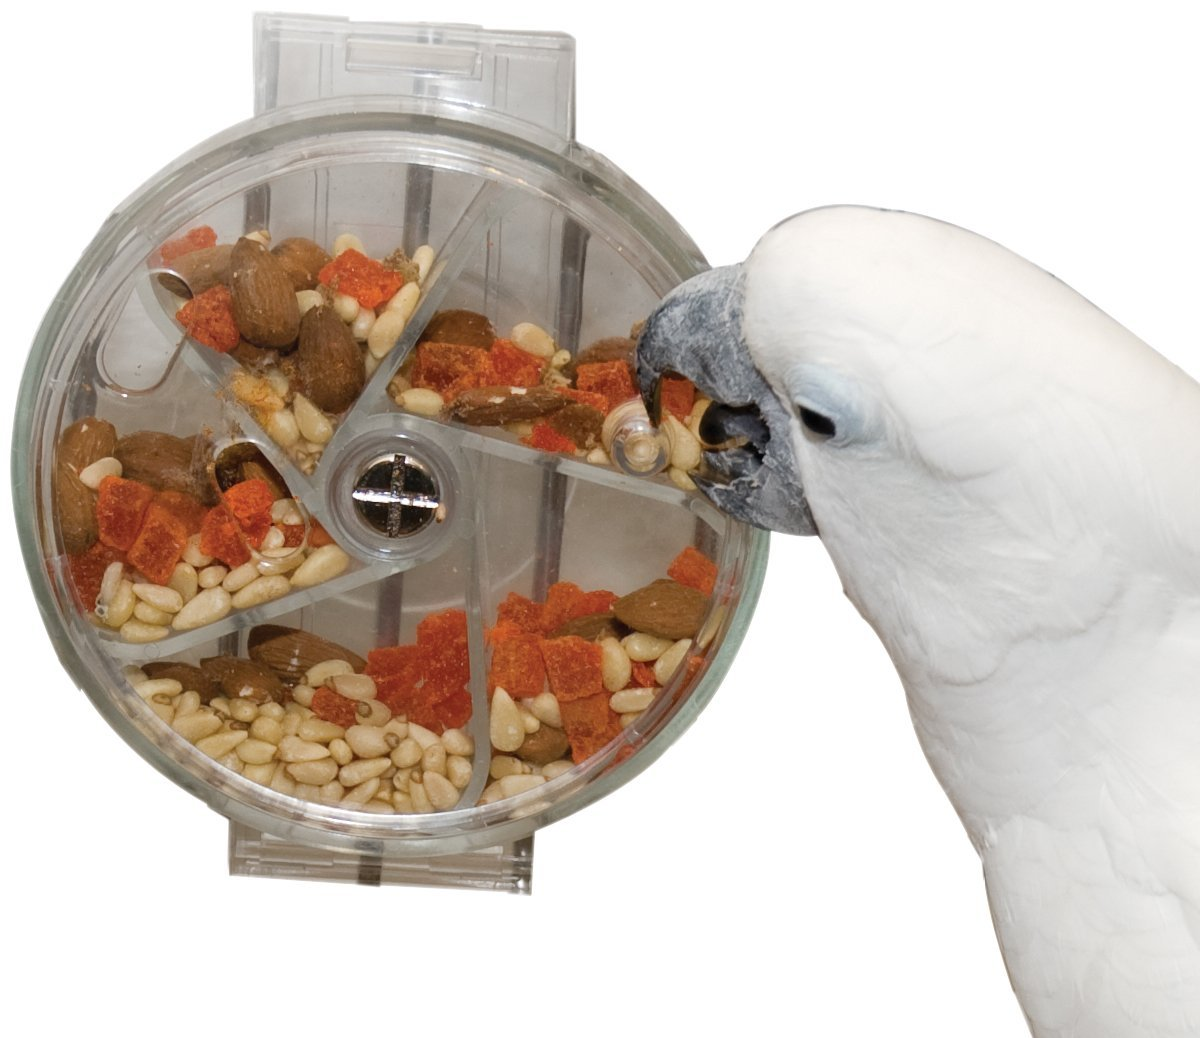 Creative Foraging Systems Foraging Wheel, 6-Inch Diameter for African Grey Parrots